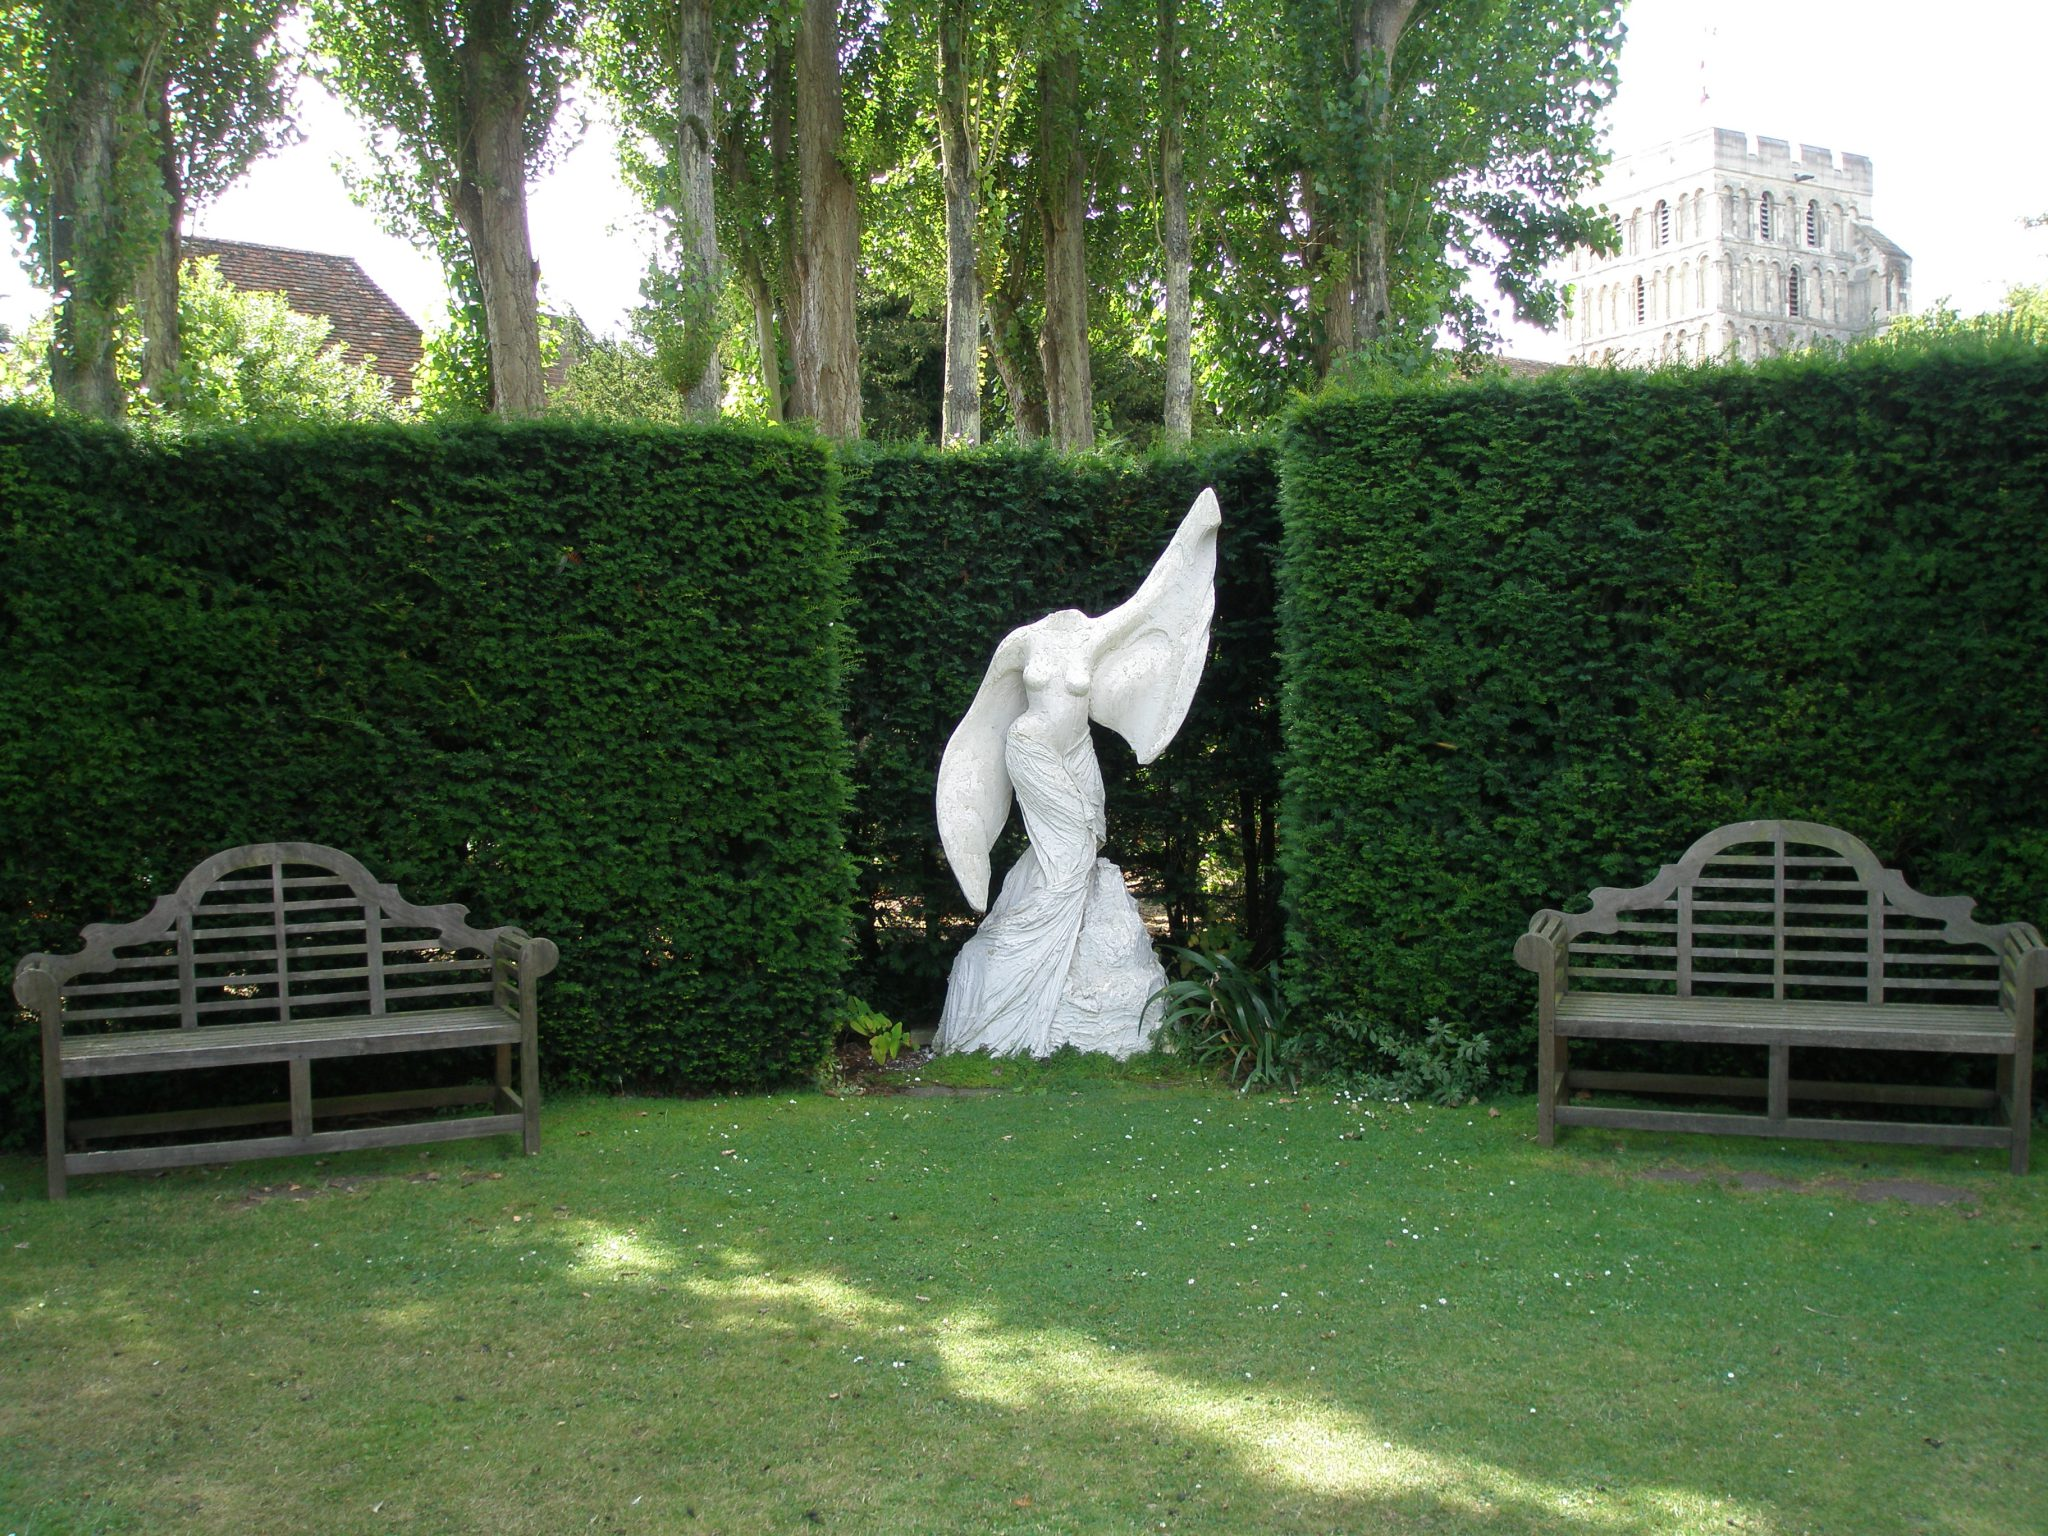 In the end-most curve of the hedge that encloses the Bowling Lawn: two more of Lutyen's Signatue Benches flank a joyous Angel Statue. In the background: a glimpse of one of the ancient buildings in the town of Sandwich, which was one of the original Cinque Ports; established in the 12th century to defend England's south coast from invasion.